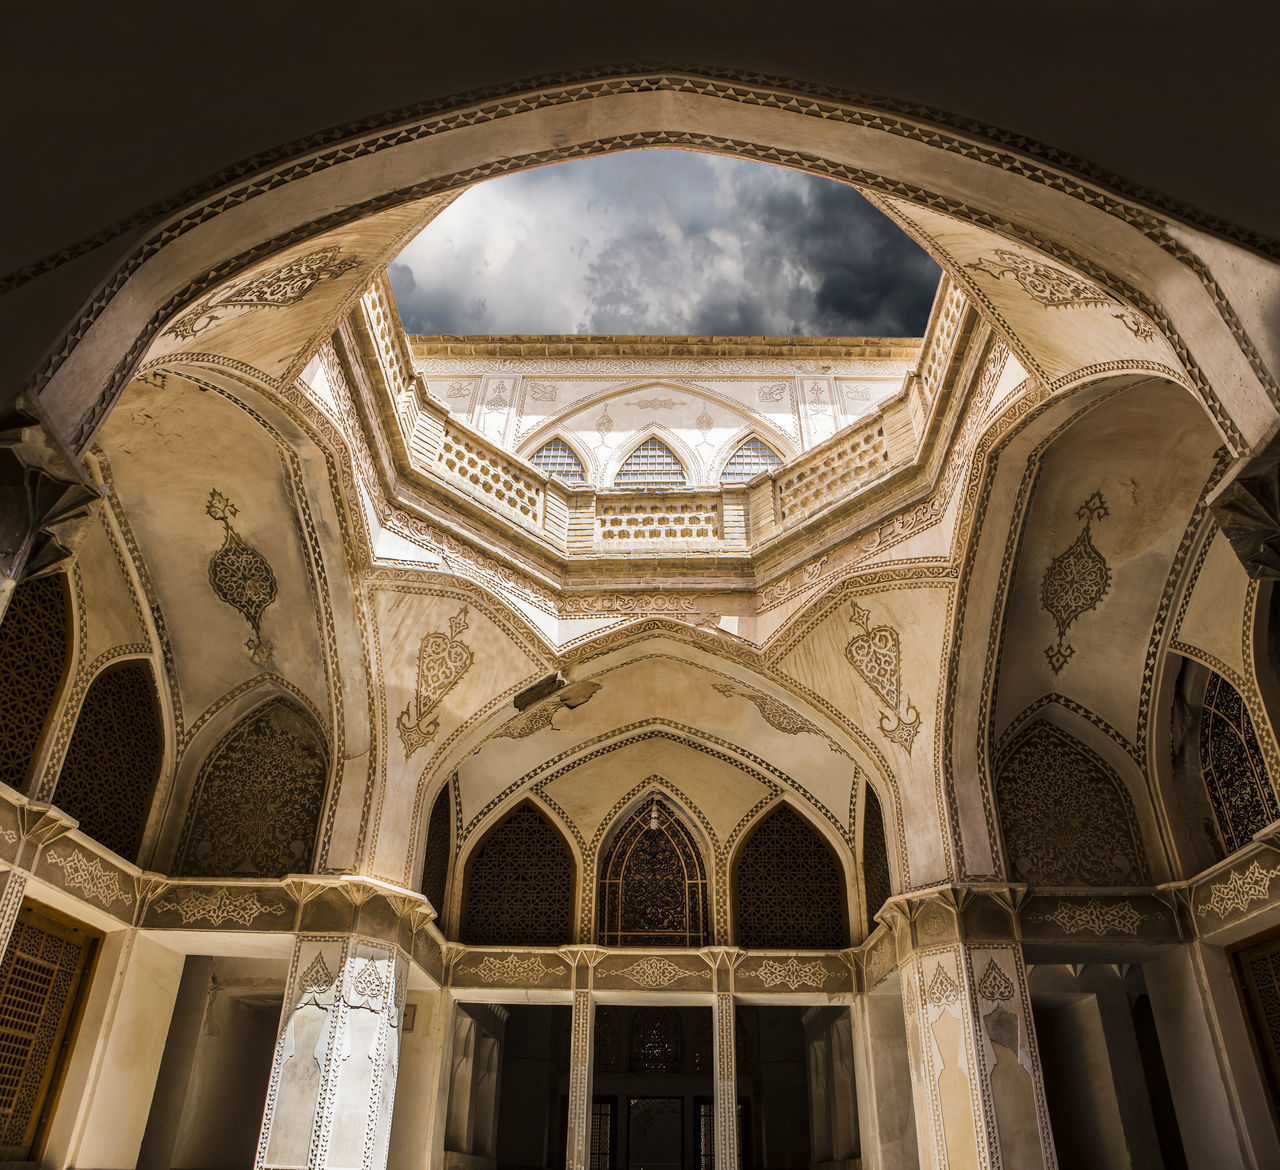 Here is Abbasian House in Kashan and i love the architect of Kashan house because its too much working on walls and roofs like a carpet have design . Abbasian Architecture Architecture_collection Iran Iran Street Photography Kashan Neighborhood Map The Architect - 2017 EyeEm Awards The Great Outdoors - 2017 EyeEm Awards BYOPaper! Live For The Story Place Of Heart